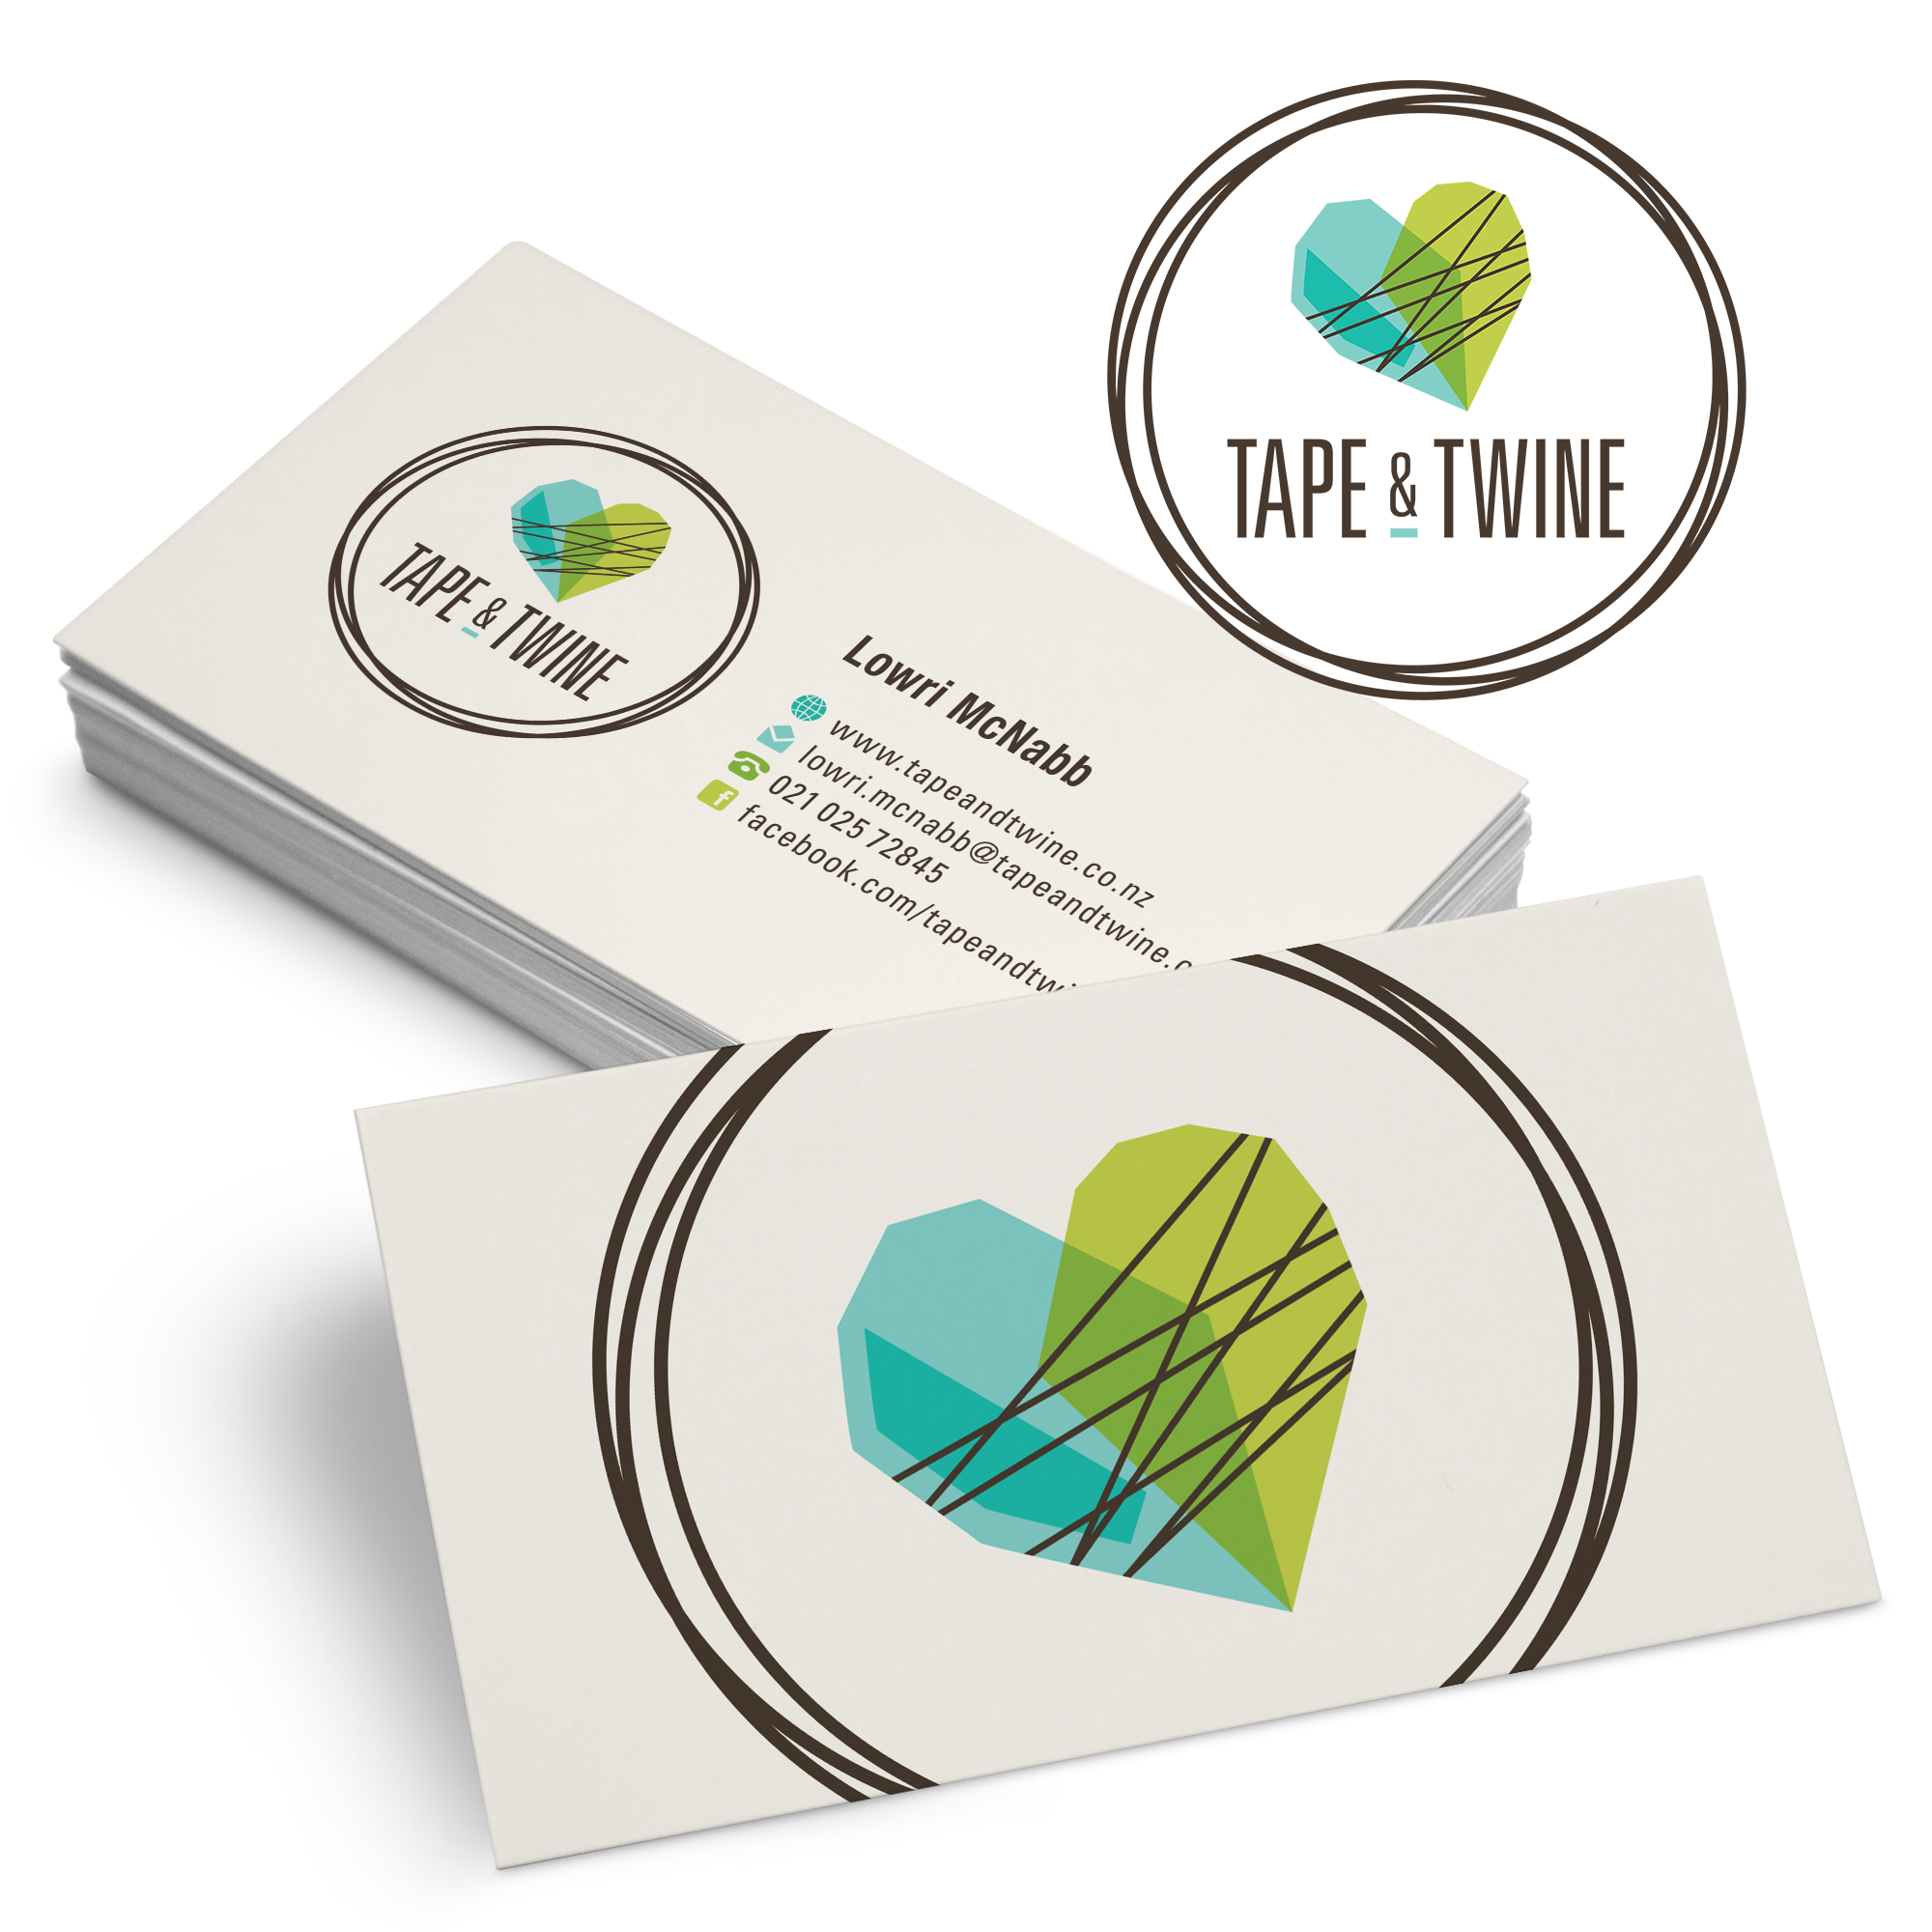 Business card logos get a custom logo for business cards 99designs logo business card design by pecas colourmoves